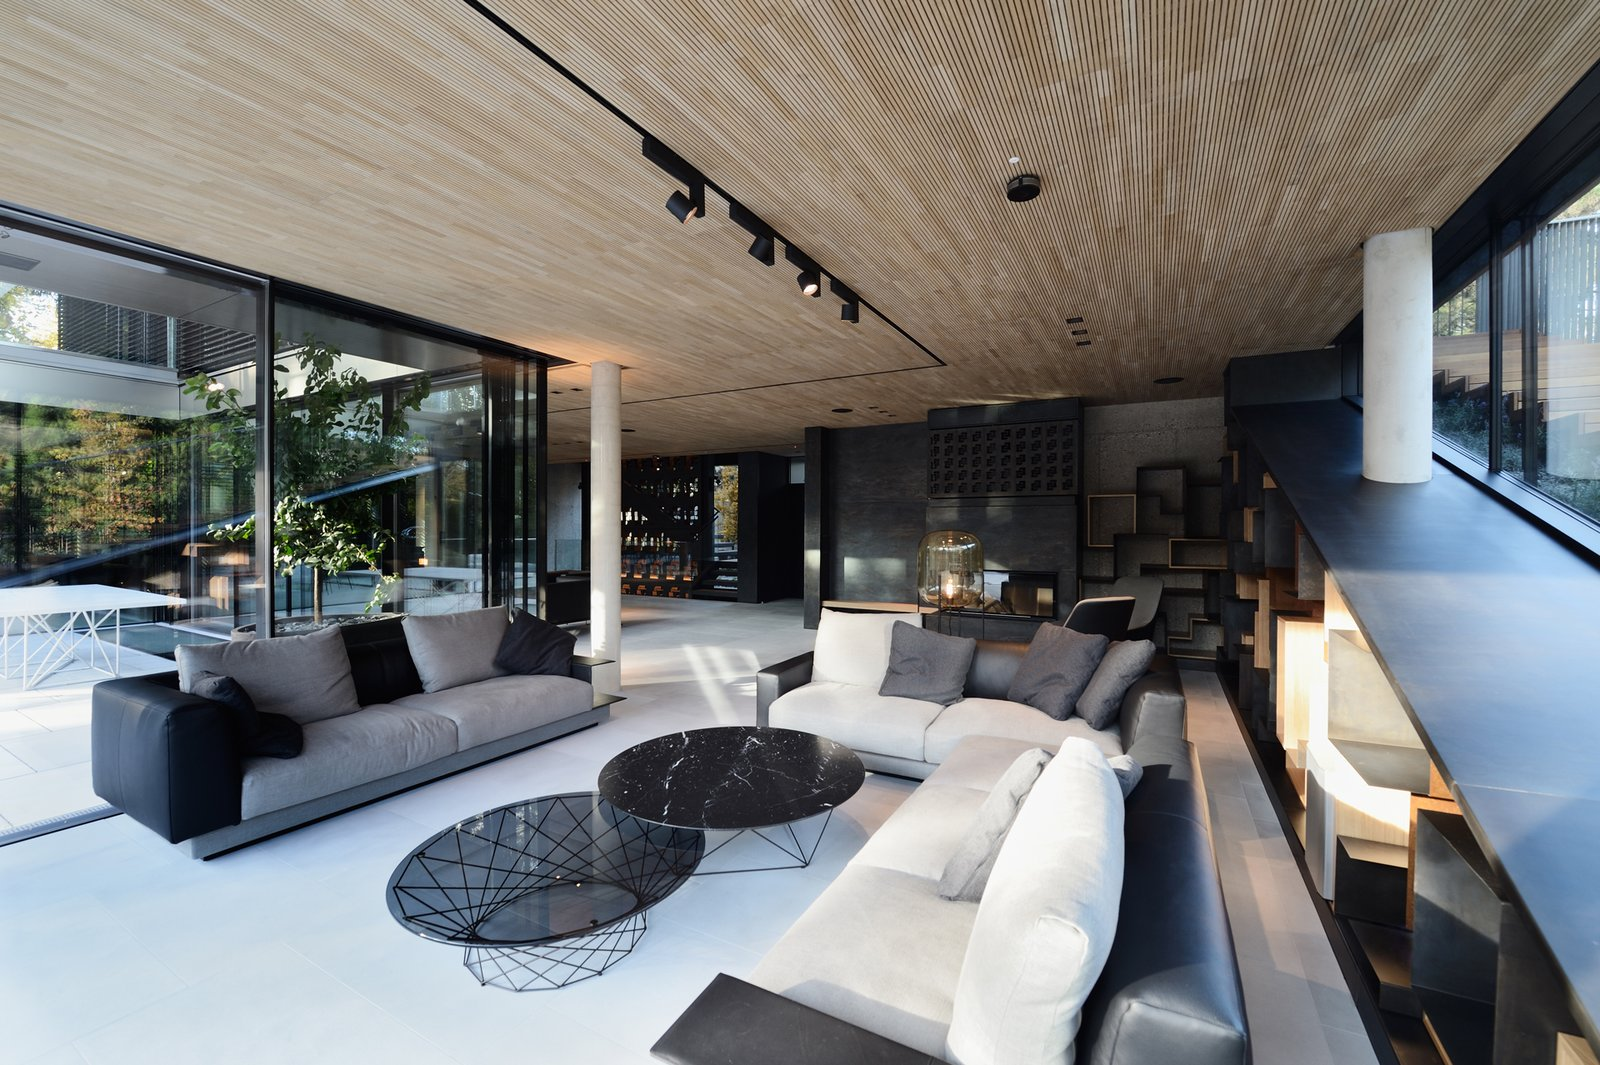 Living room with the fireplace